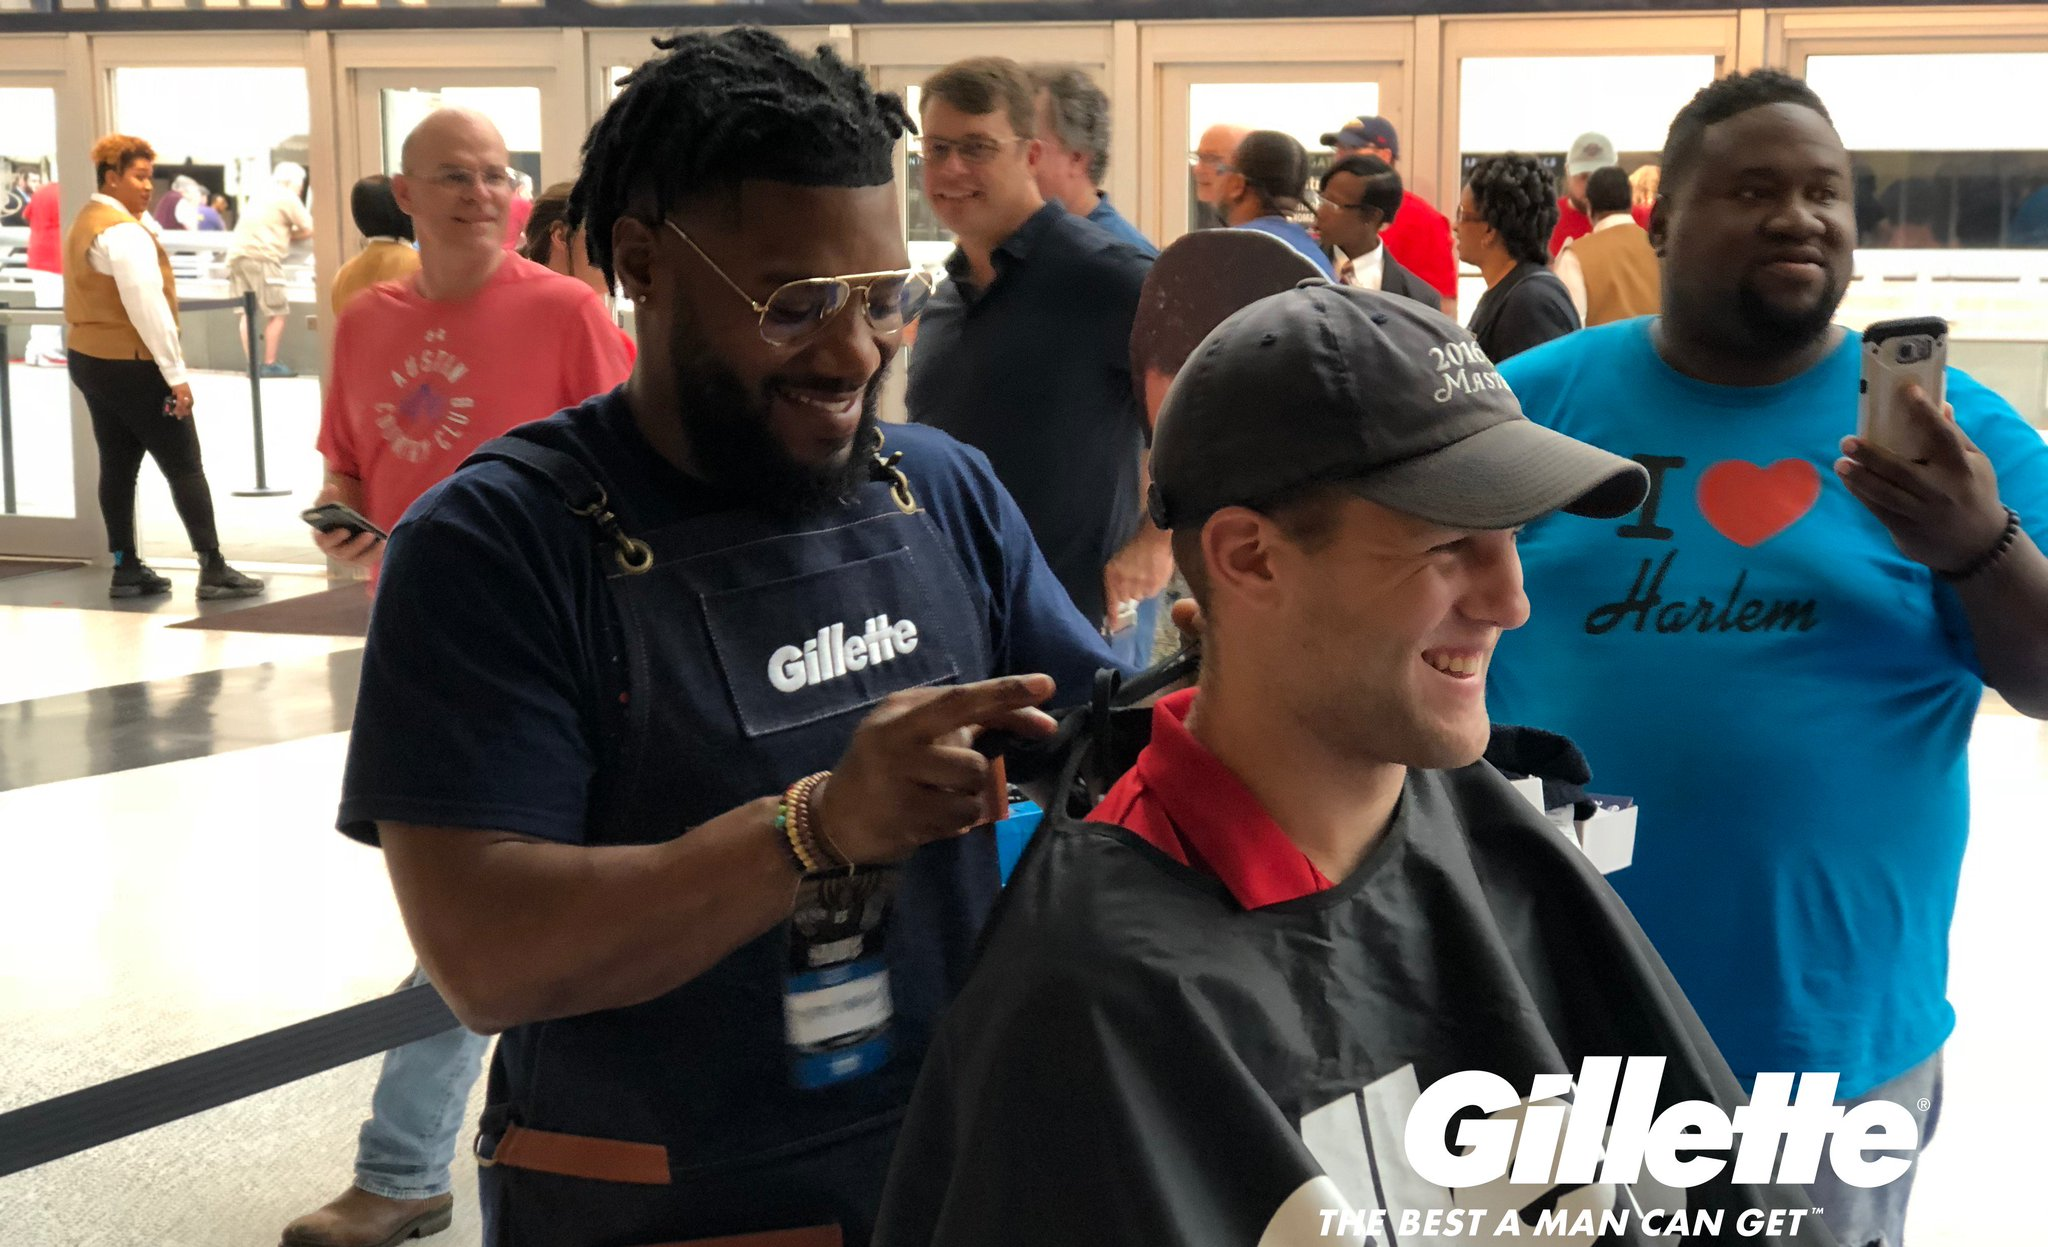 Thanks to everybody who supported @threekola in our @Gillette Beard shaving! #doitBIGGER #CleanShave https://t.co/5tihlN67AZ